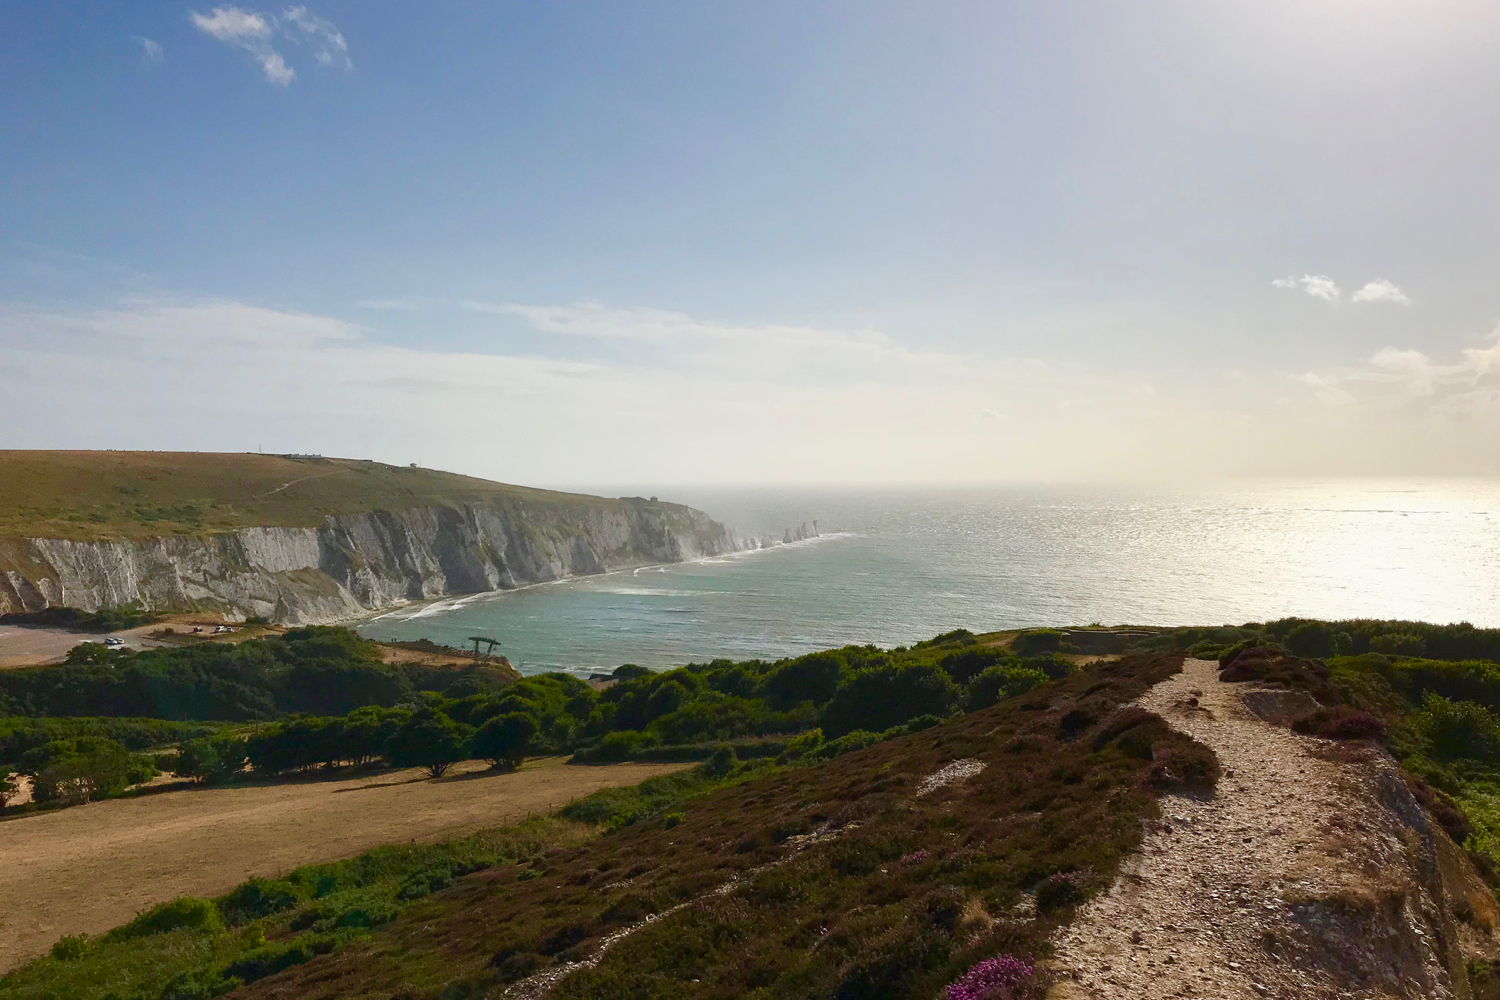 View across to The Needles, Isle of Wight